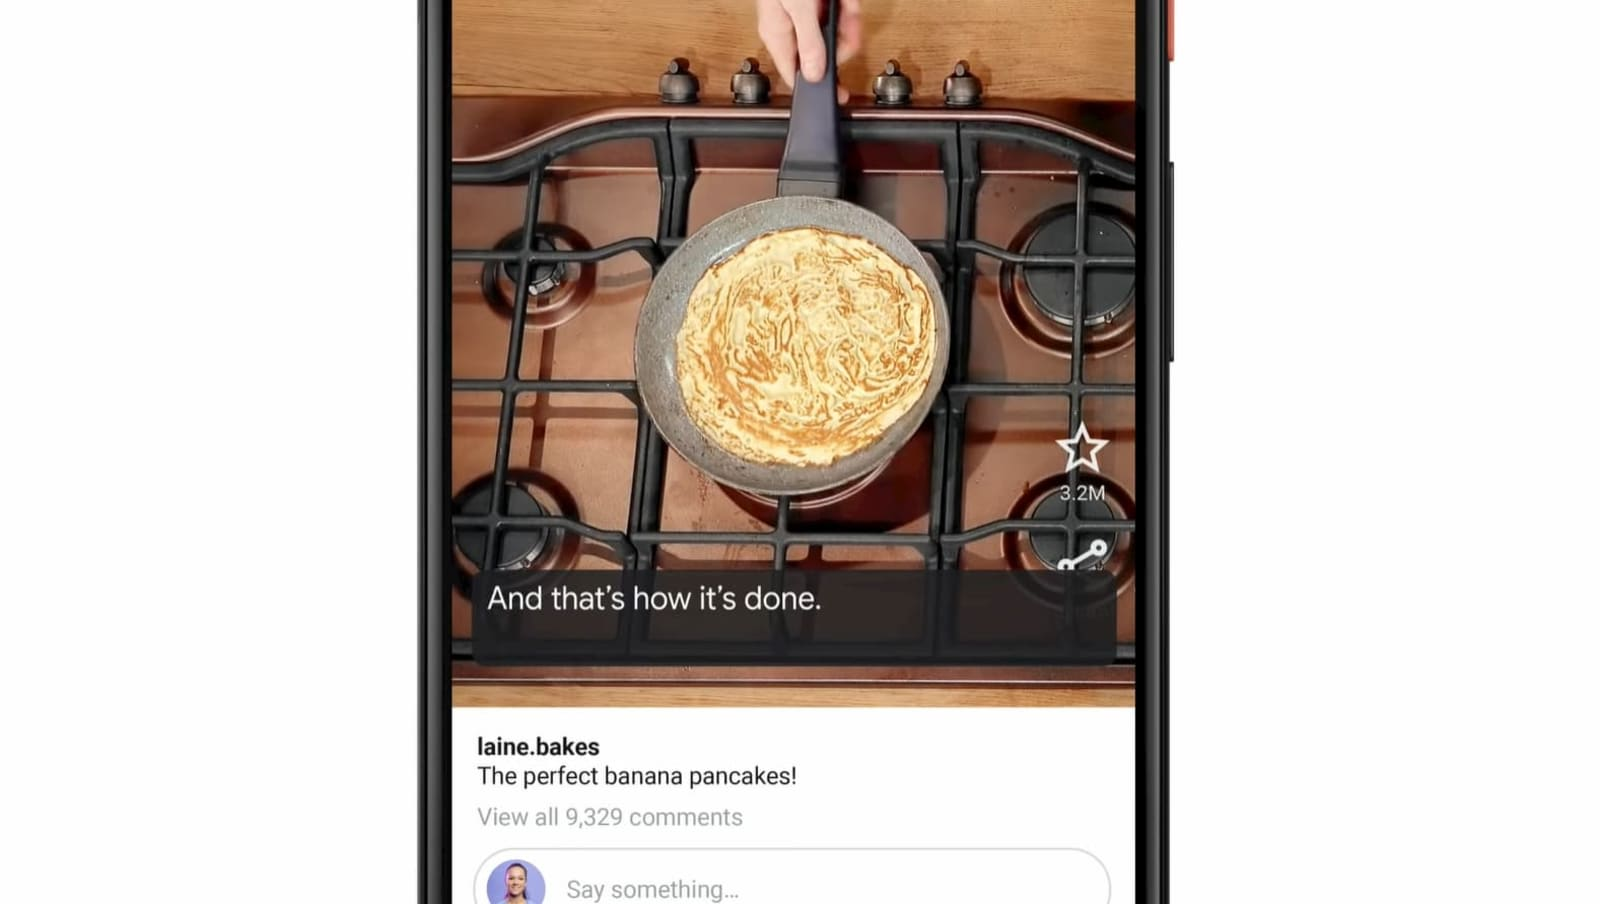 Google rolls out real-time captioning starting with Pixel 4